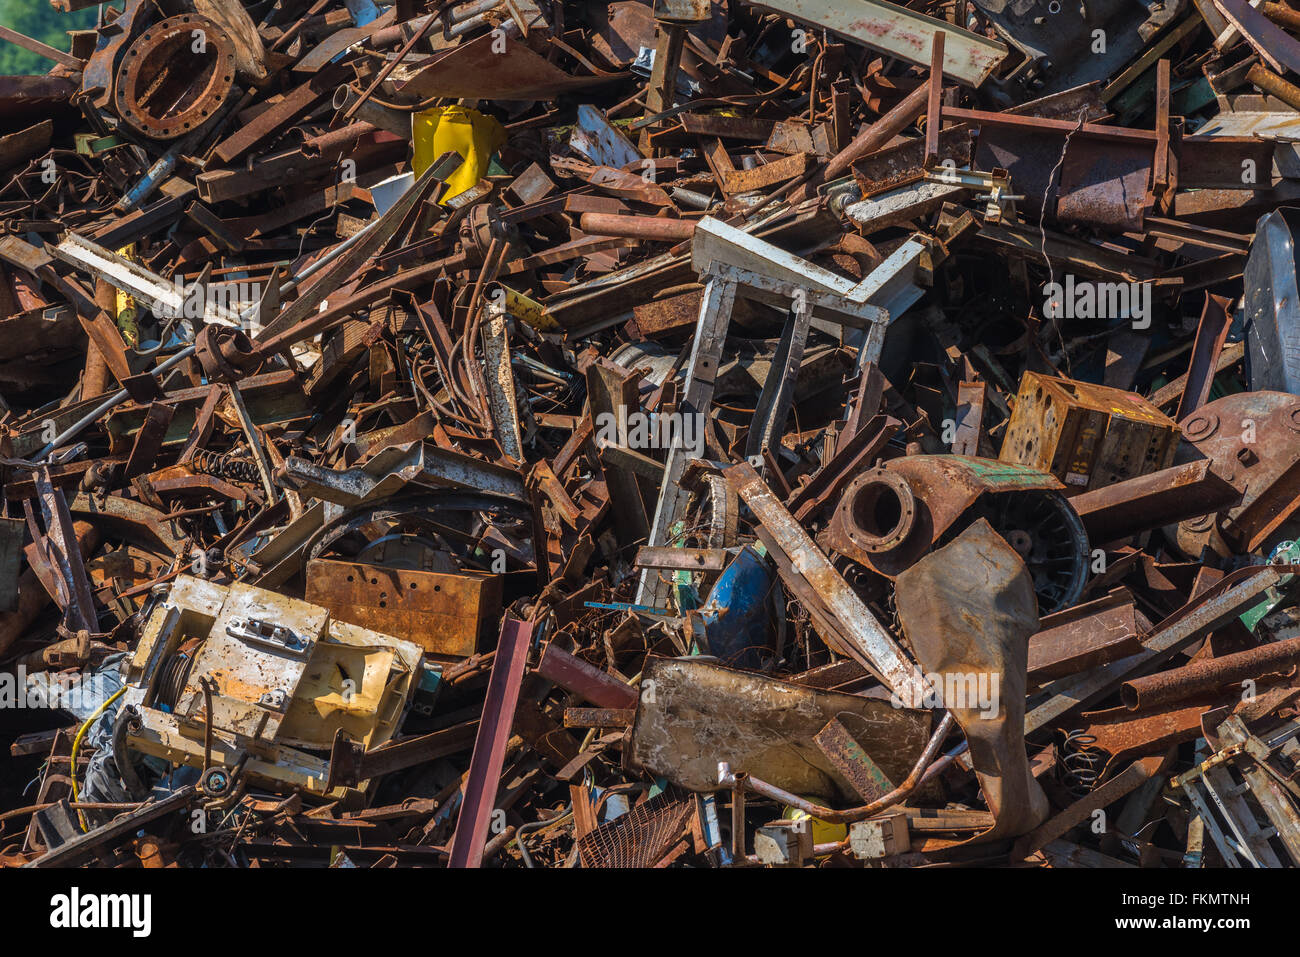 Scrap metal waste in a recycling yard Stock Photo